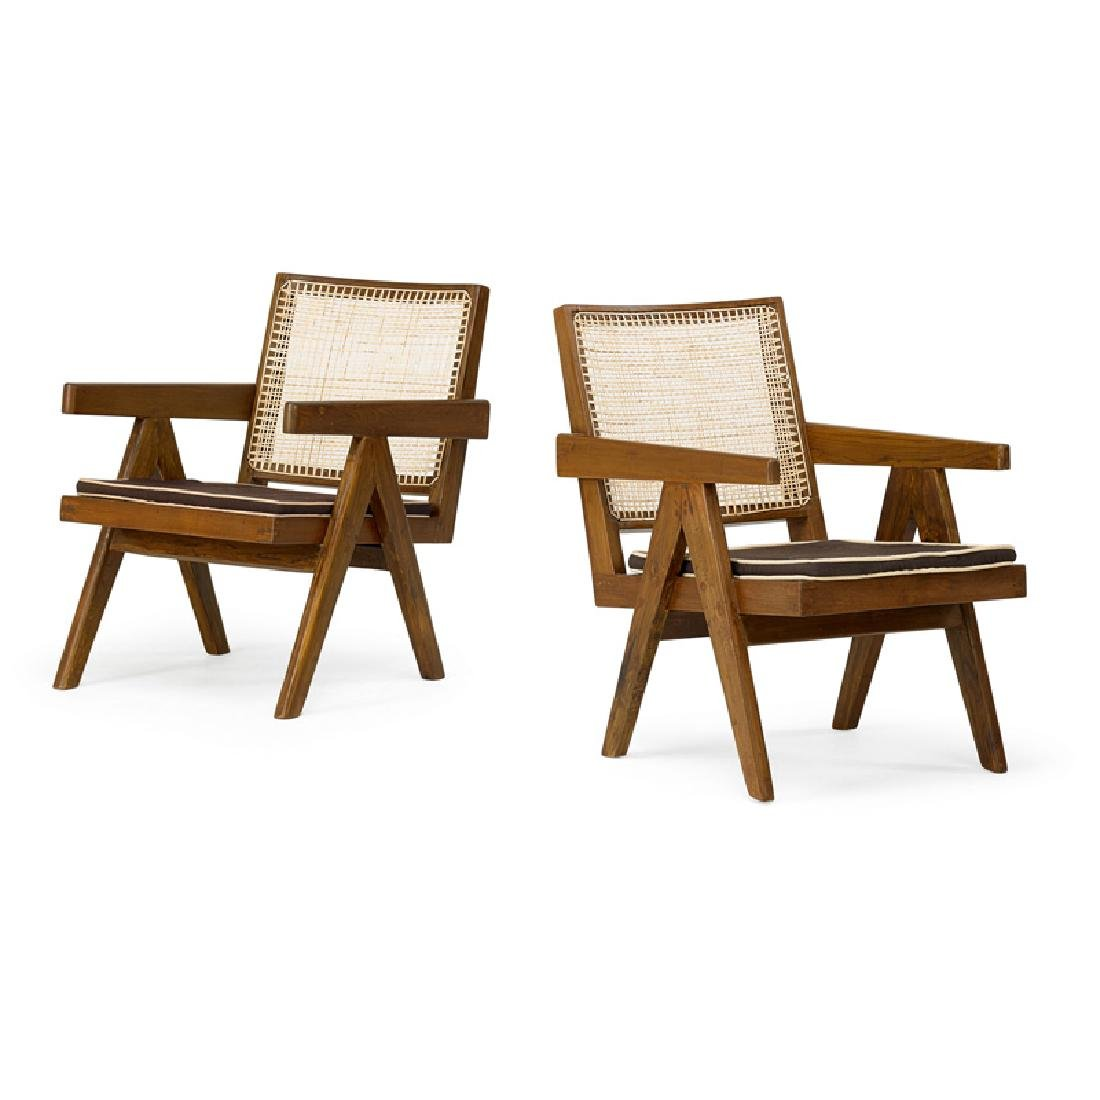 PIERRE JEANNERET Pair of V-leg armchairs